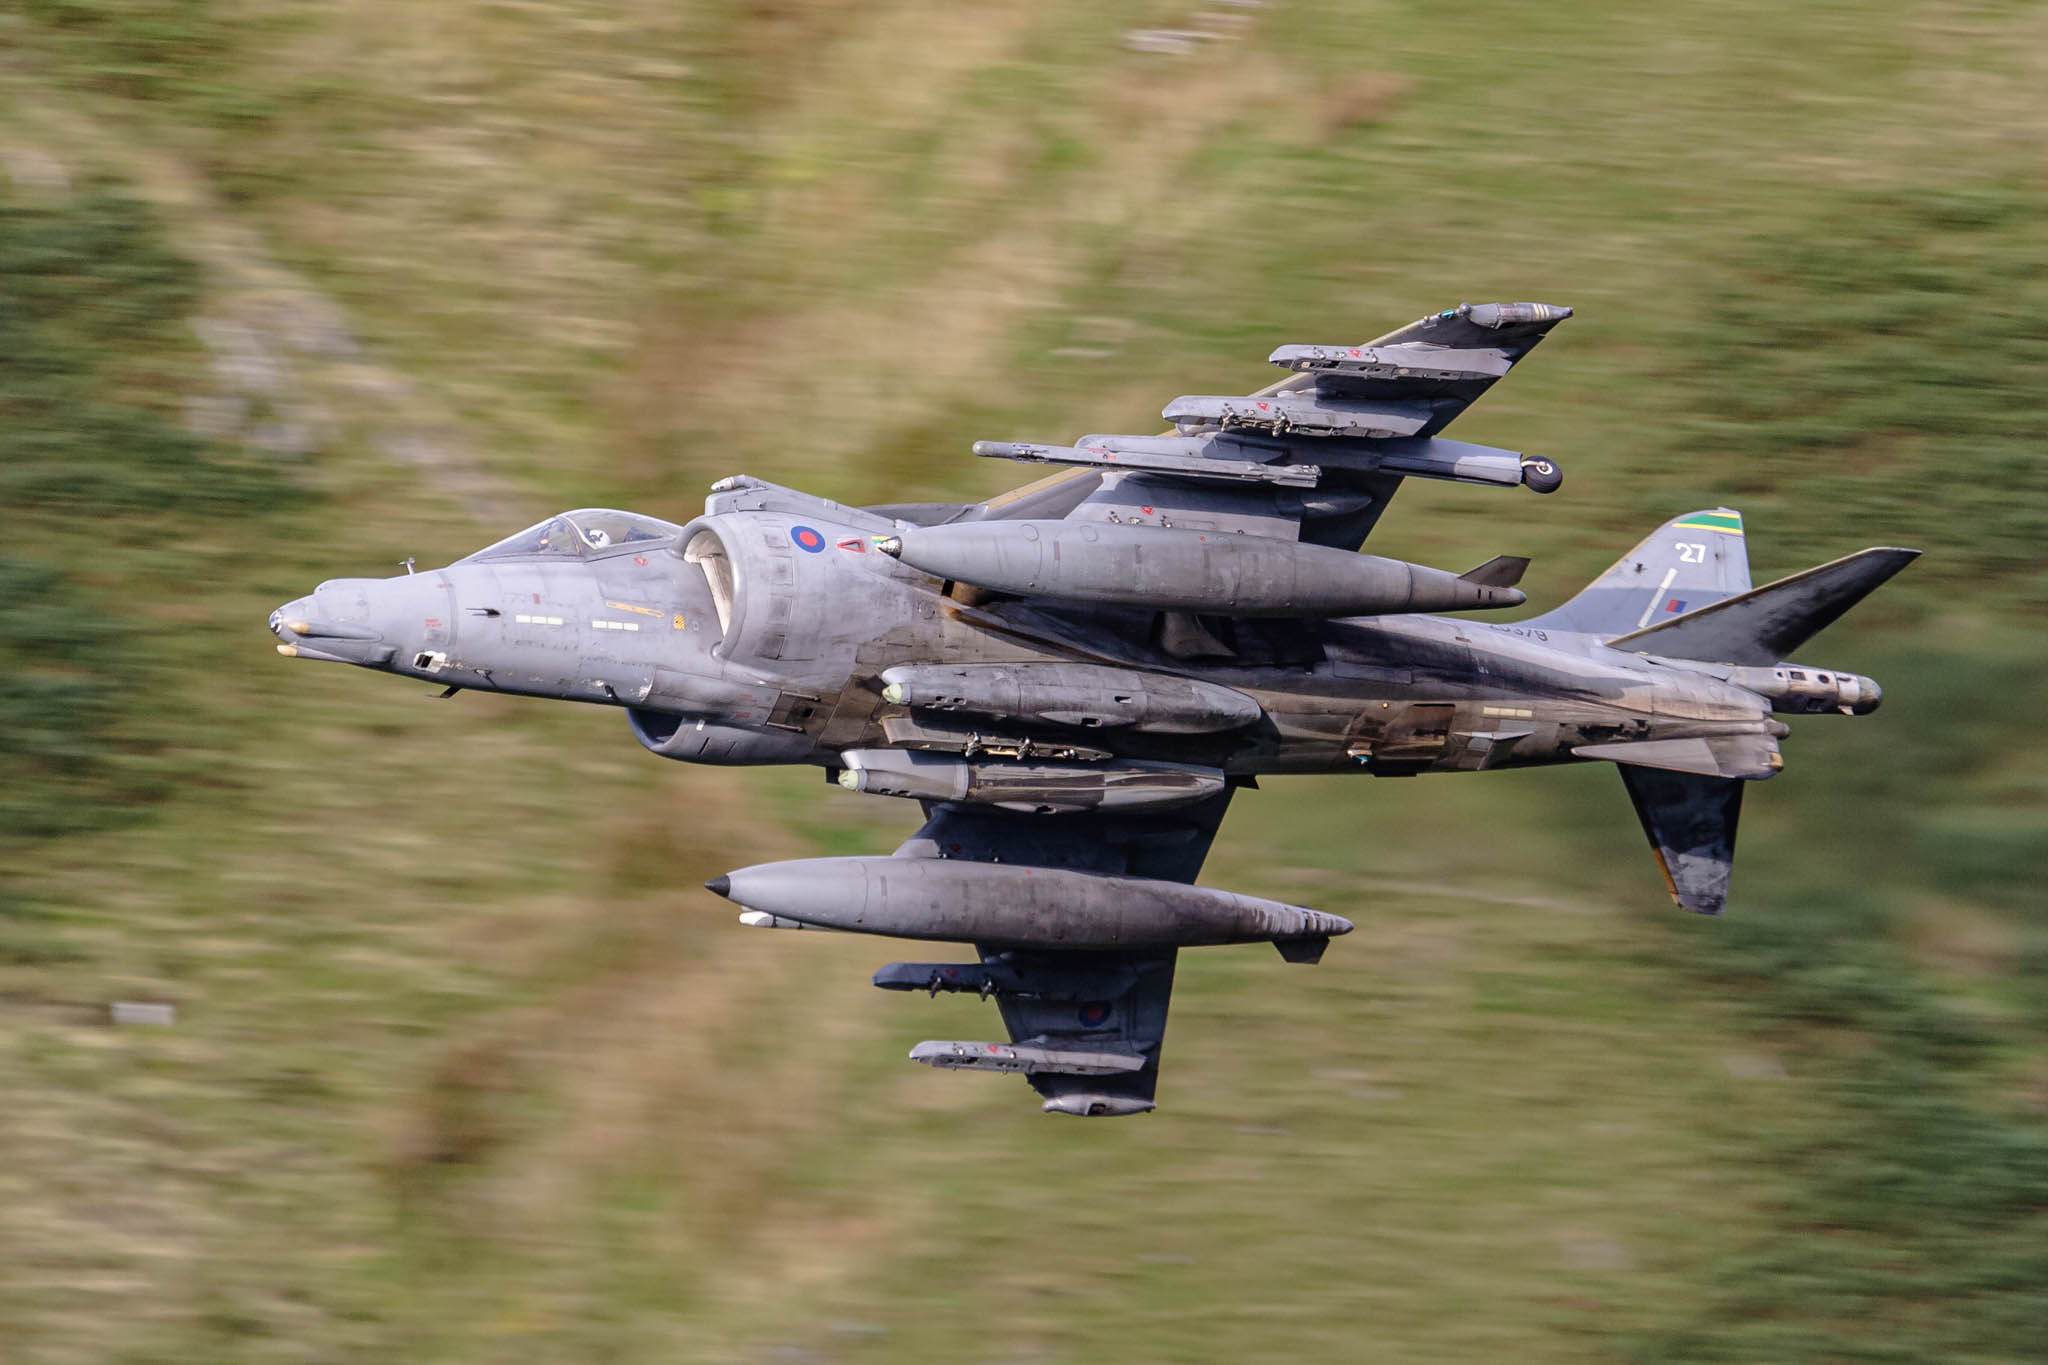 Aviation Photography RAF 3 Squadron